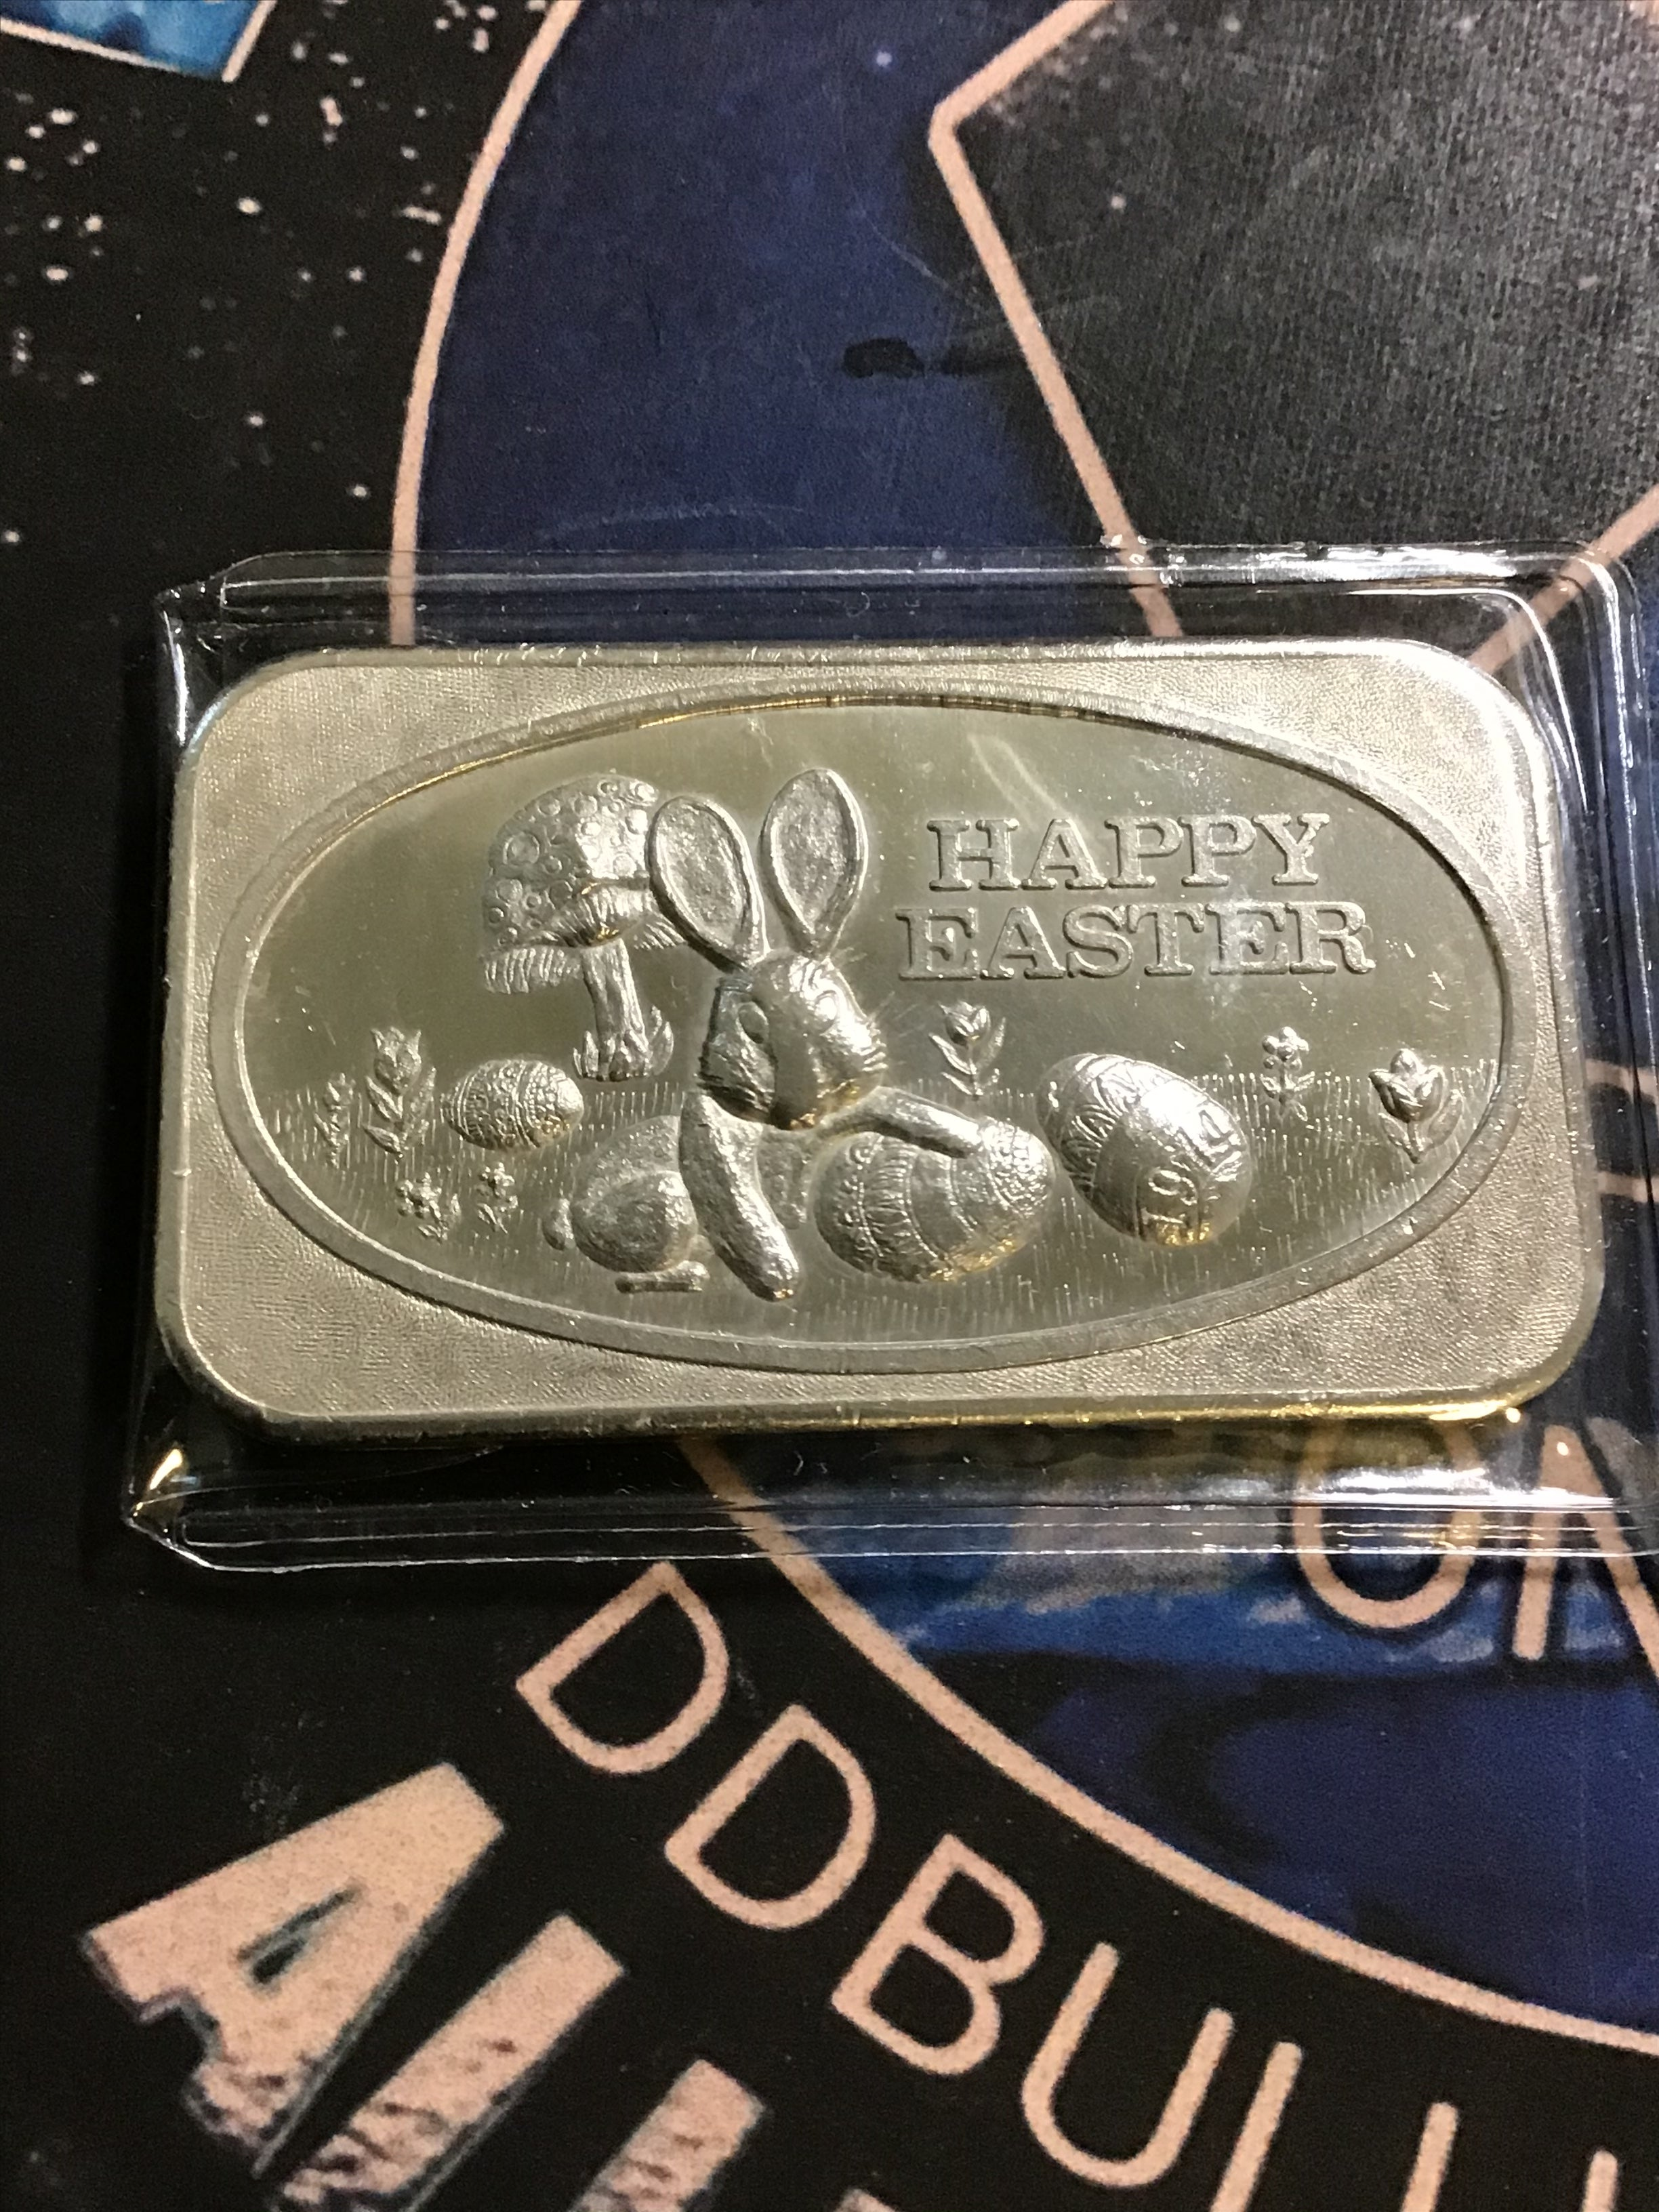 United States Silver Corporation-Happy Easter Art Bar 1 oz. Silver .999